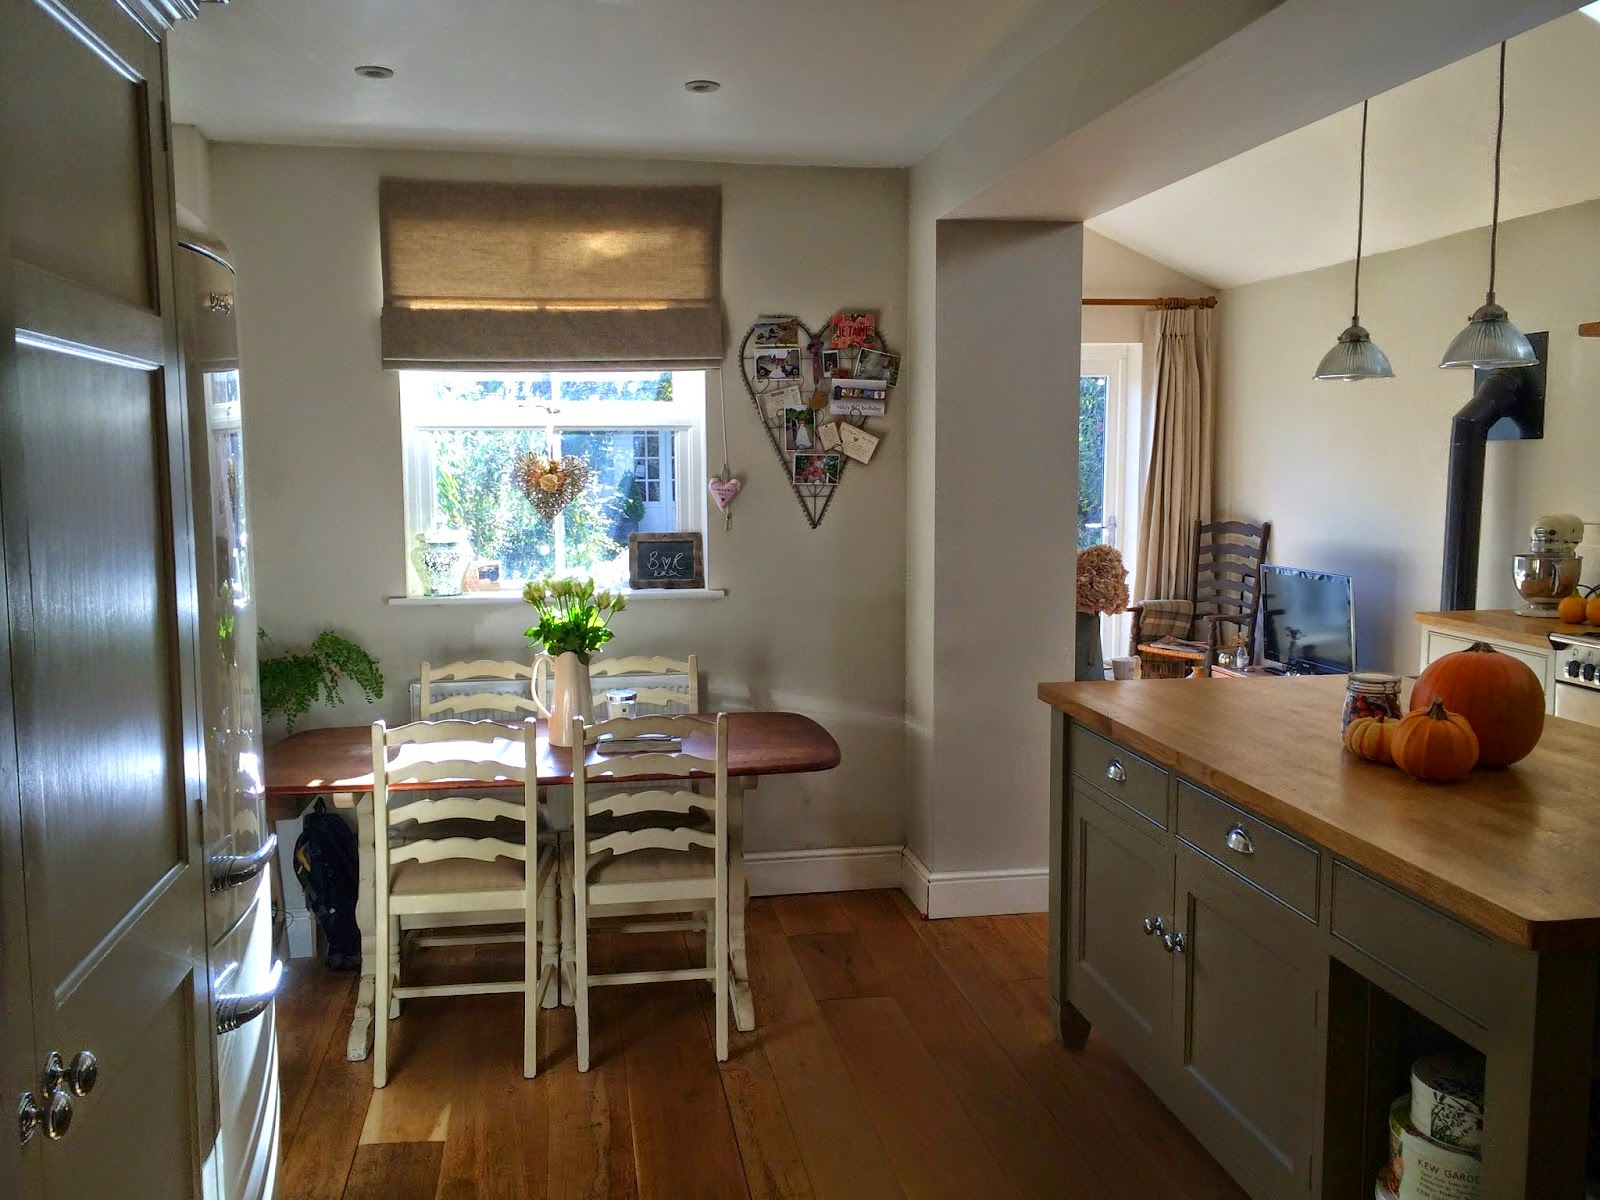 Kitchen Conservatory Makeover Our Kitchen Extension And Transformation Roses And